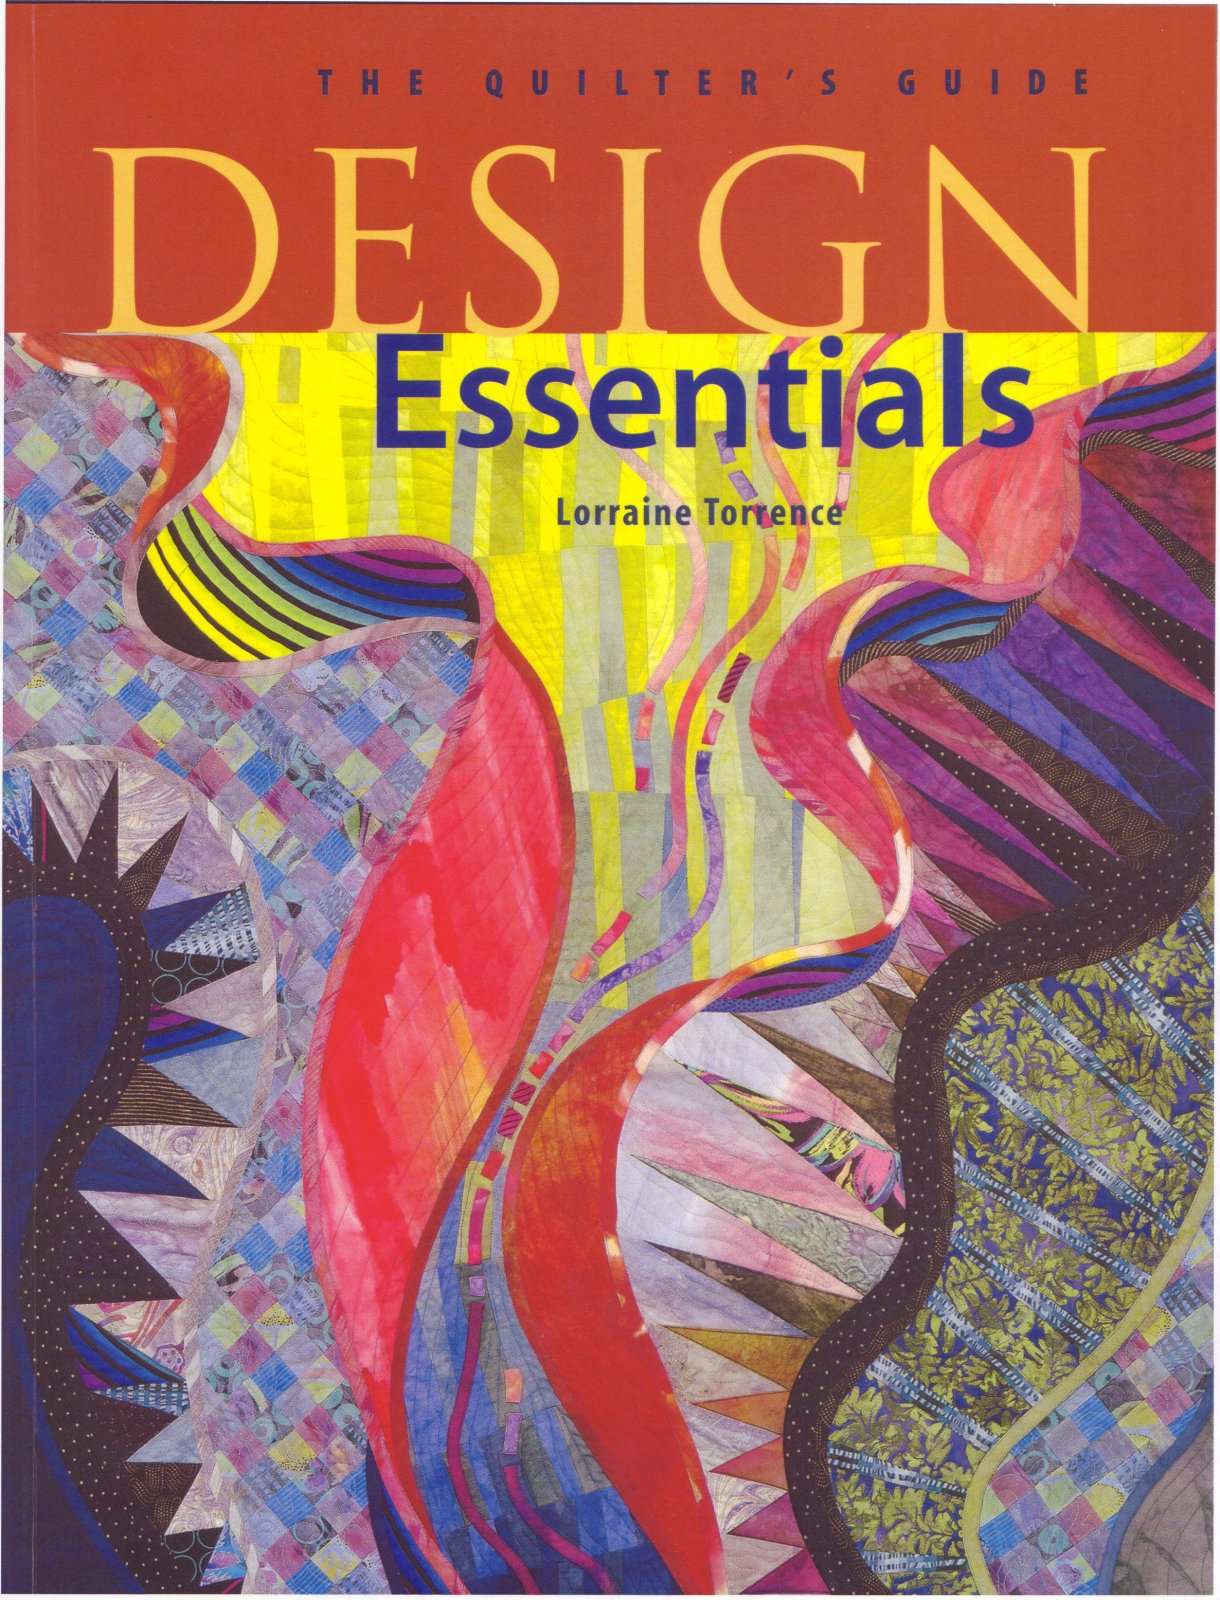 Design Essentials: The Quilter's Guide